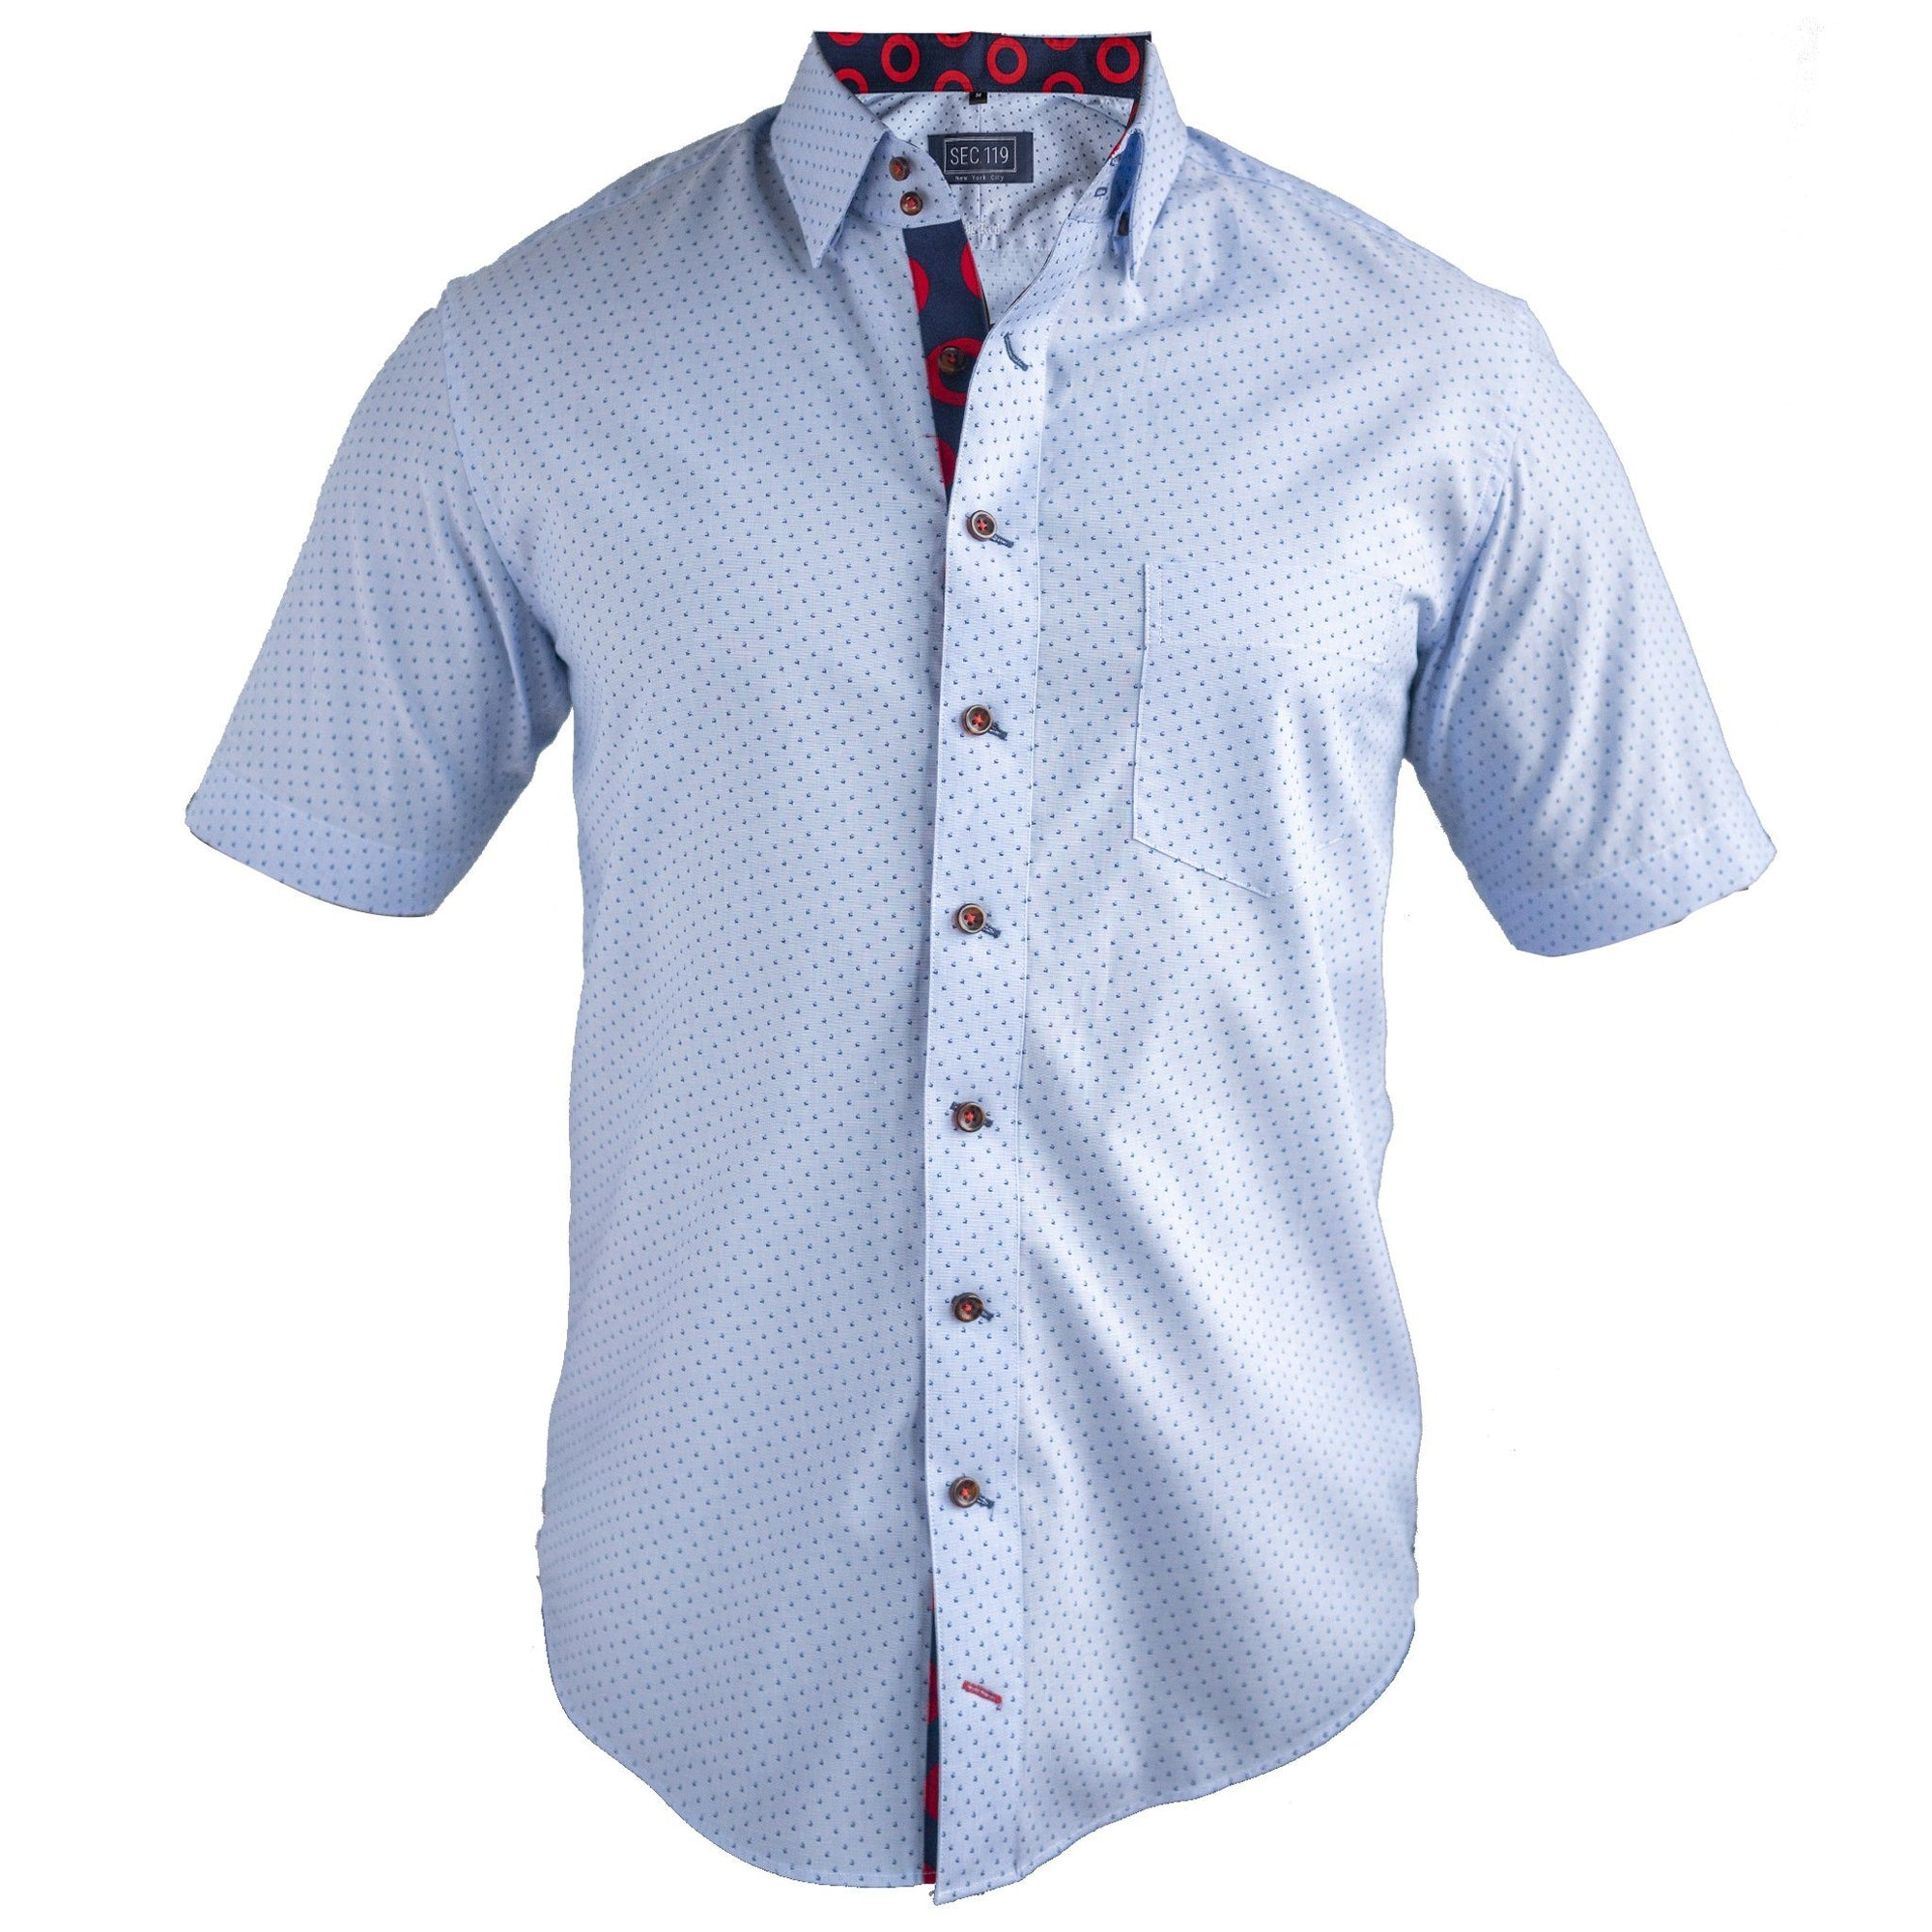 Blue Poplin Donut Short-Sleeve Shirt - Section 119